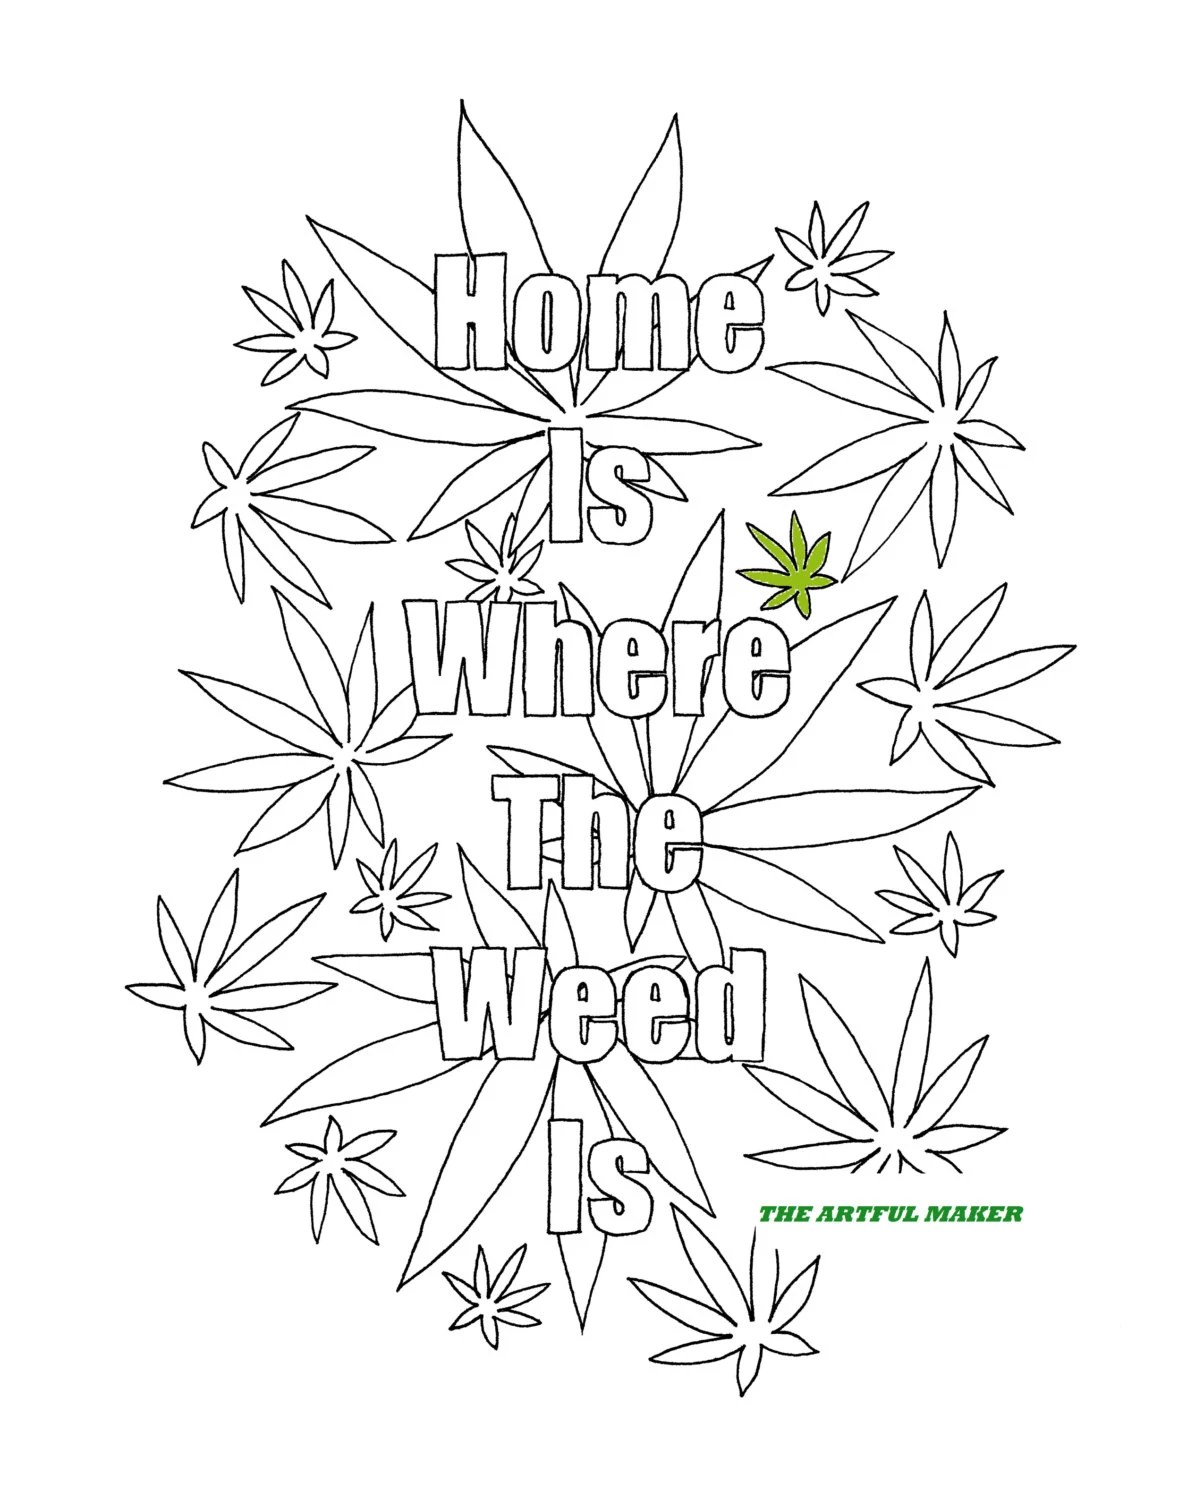 Weed Colouring Pages : colouring, pages, Where, Adult, Coloring, Artful